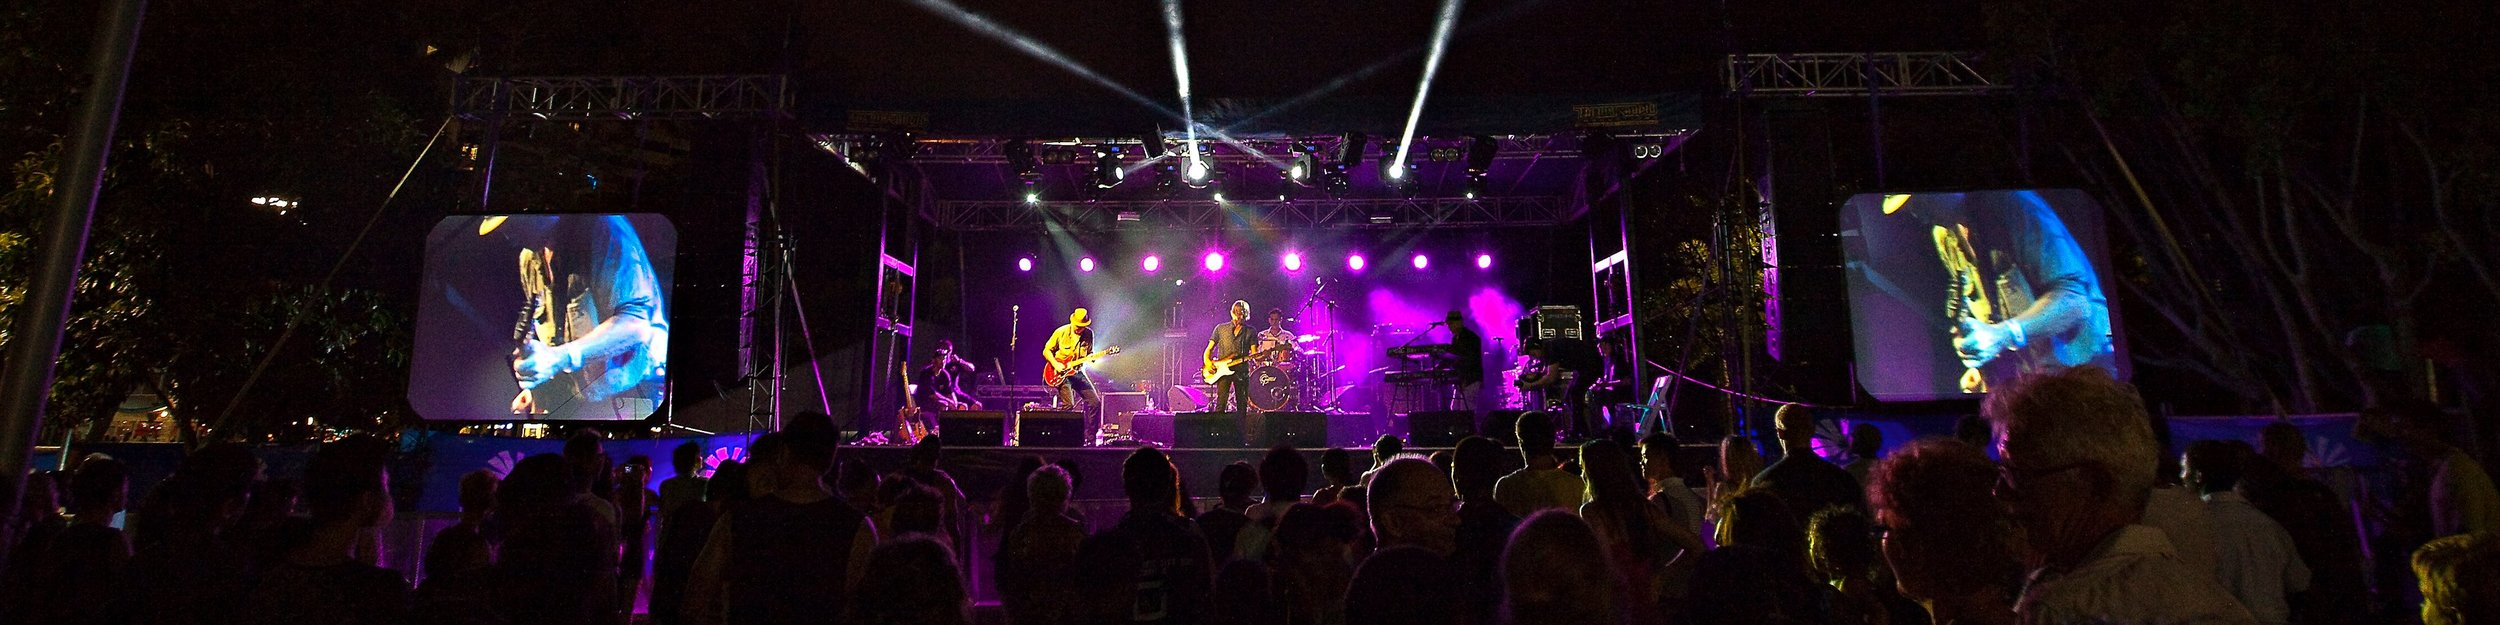 New Years Eve main stage Cairns Esplanade, QLD 2013/14 - with Eddie Skiba & the Durand Line